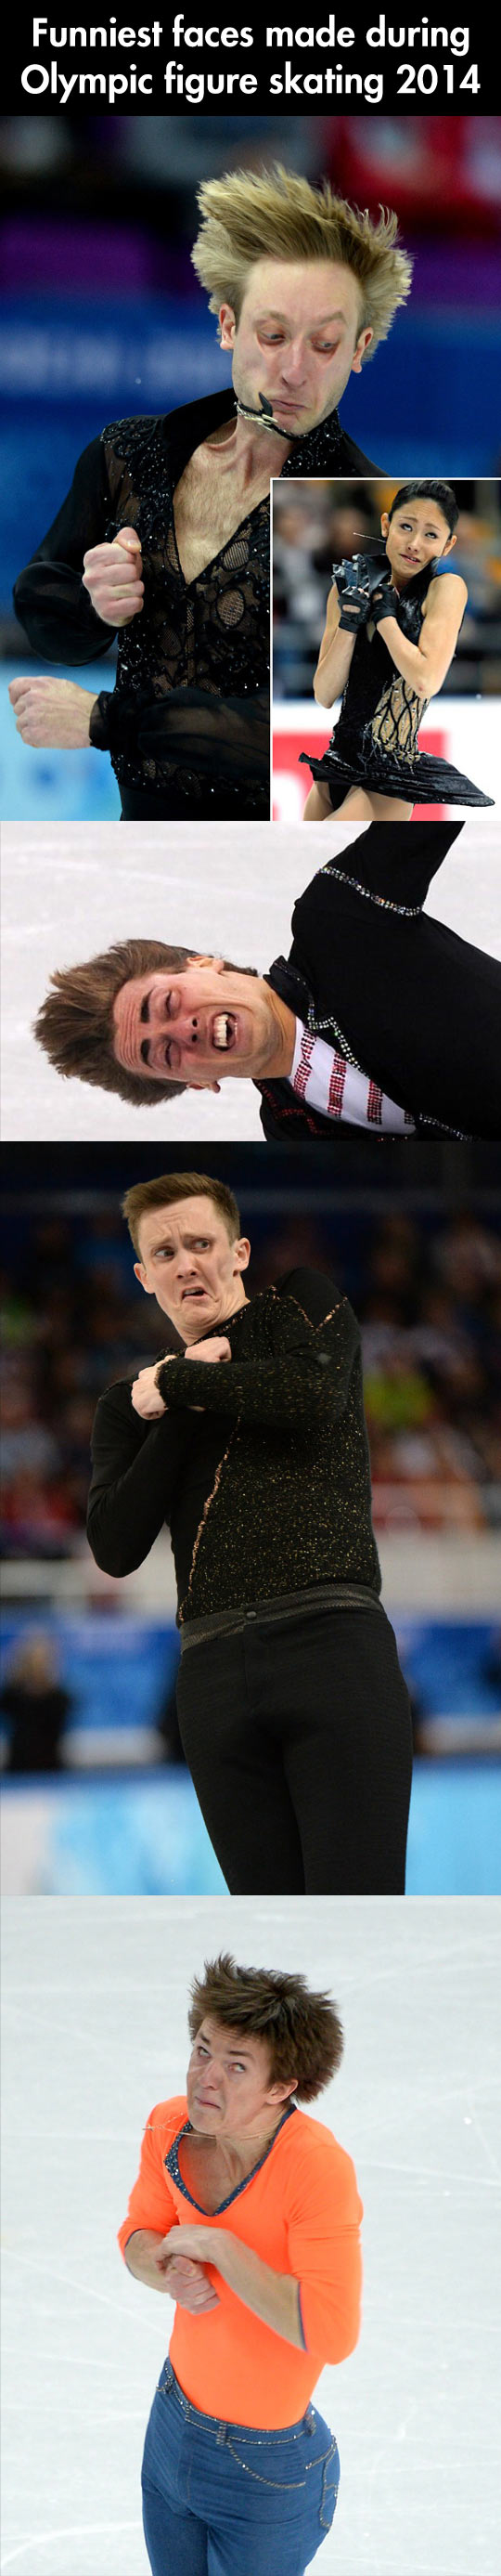 Winter Olympics faces...